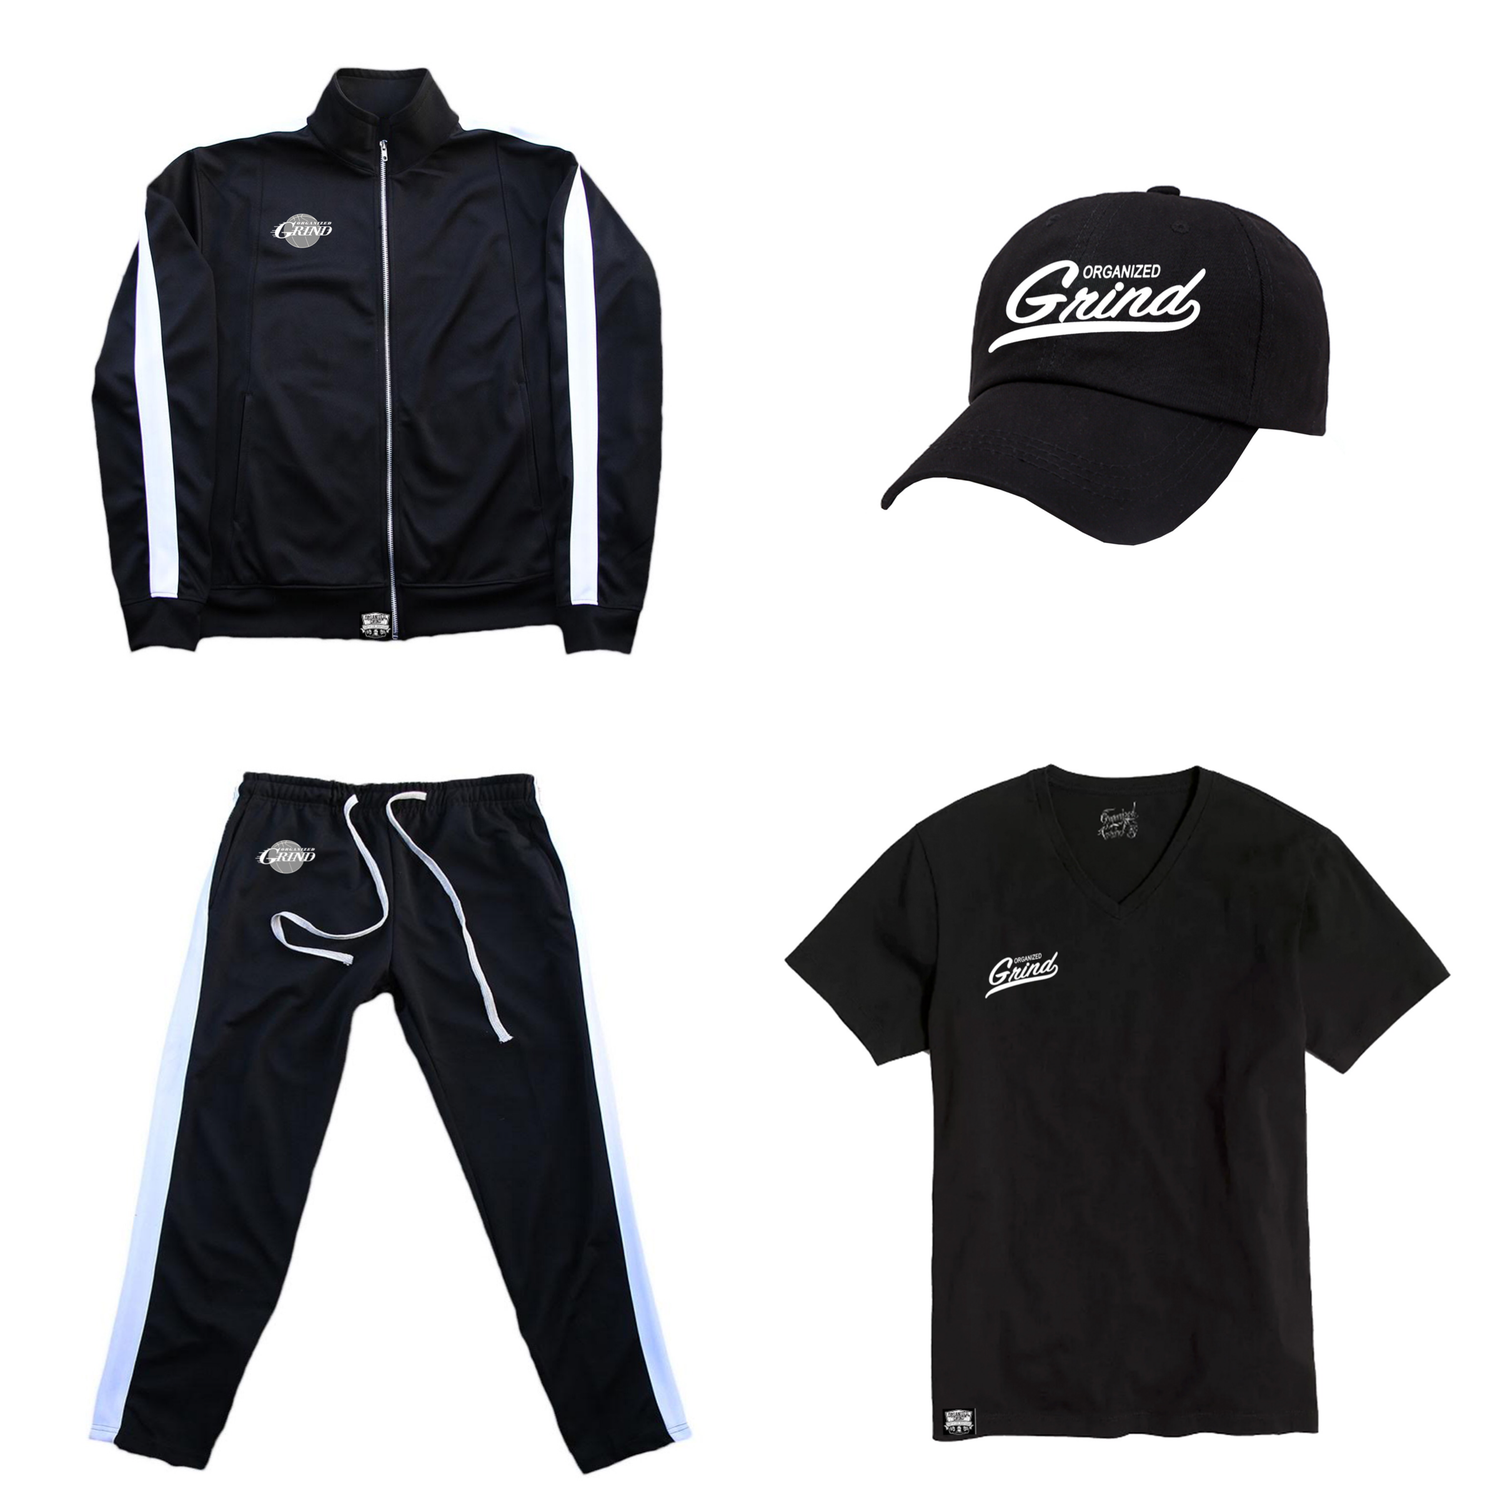 Image of OG Track Suit & Baseball Gear